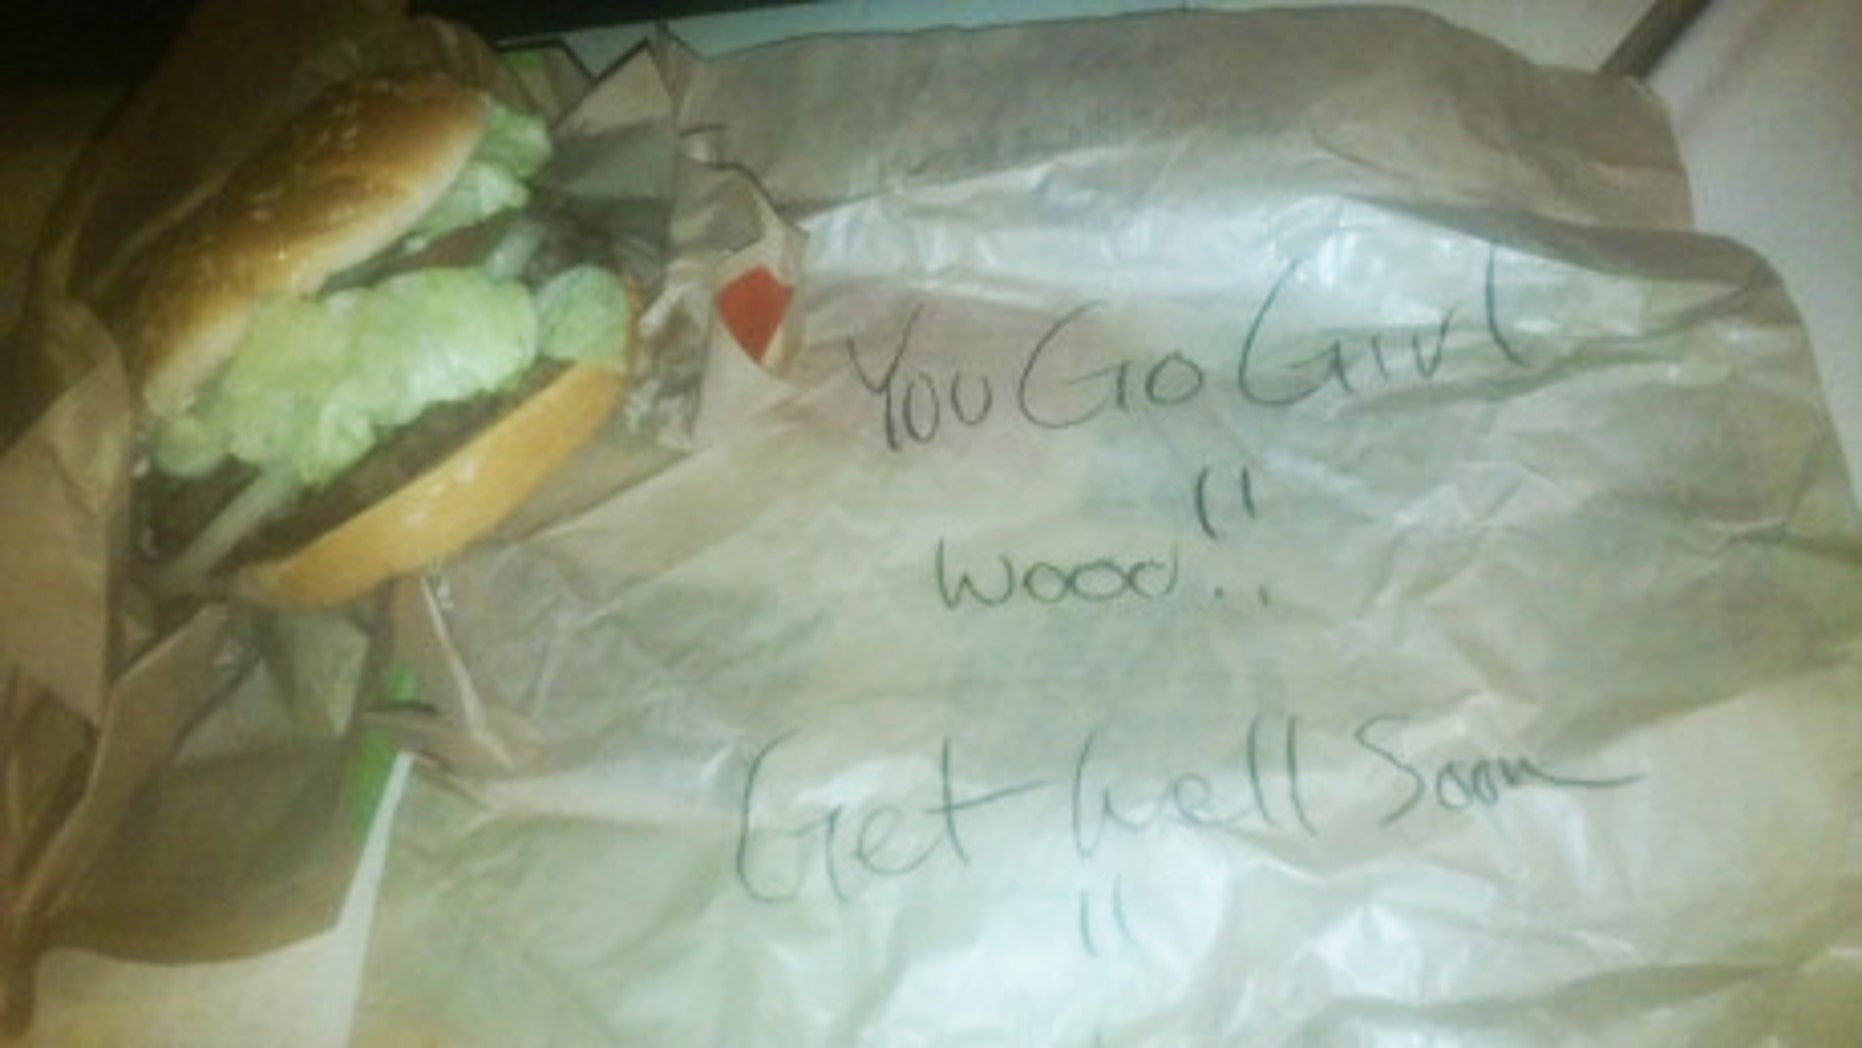 A Burger King employee penned an encouraging note on a cancer pateint's order.